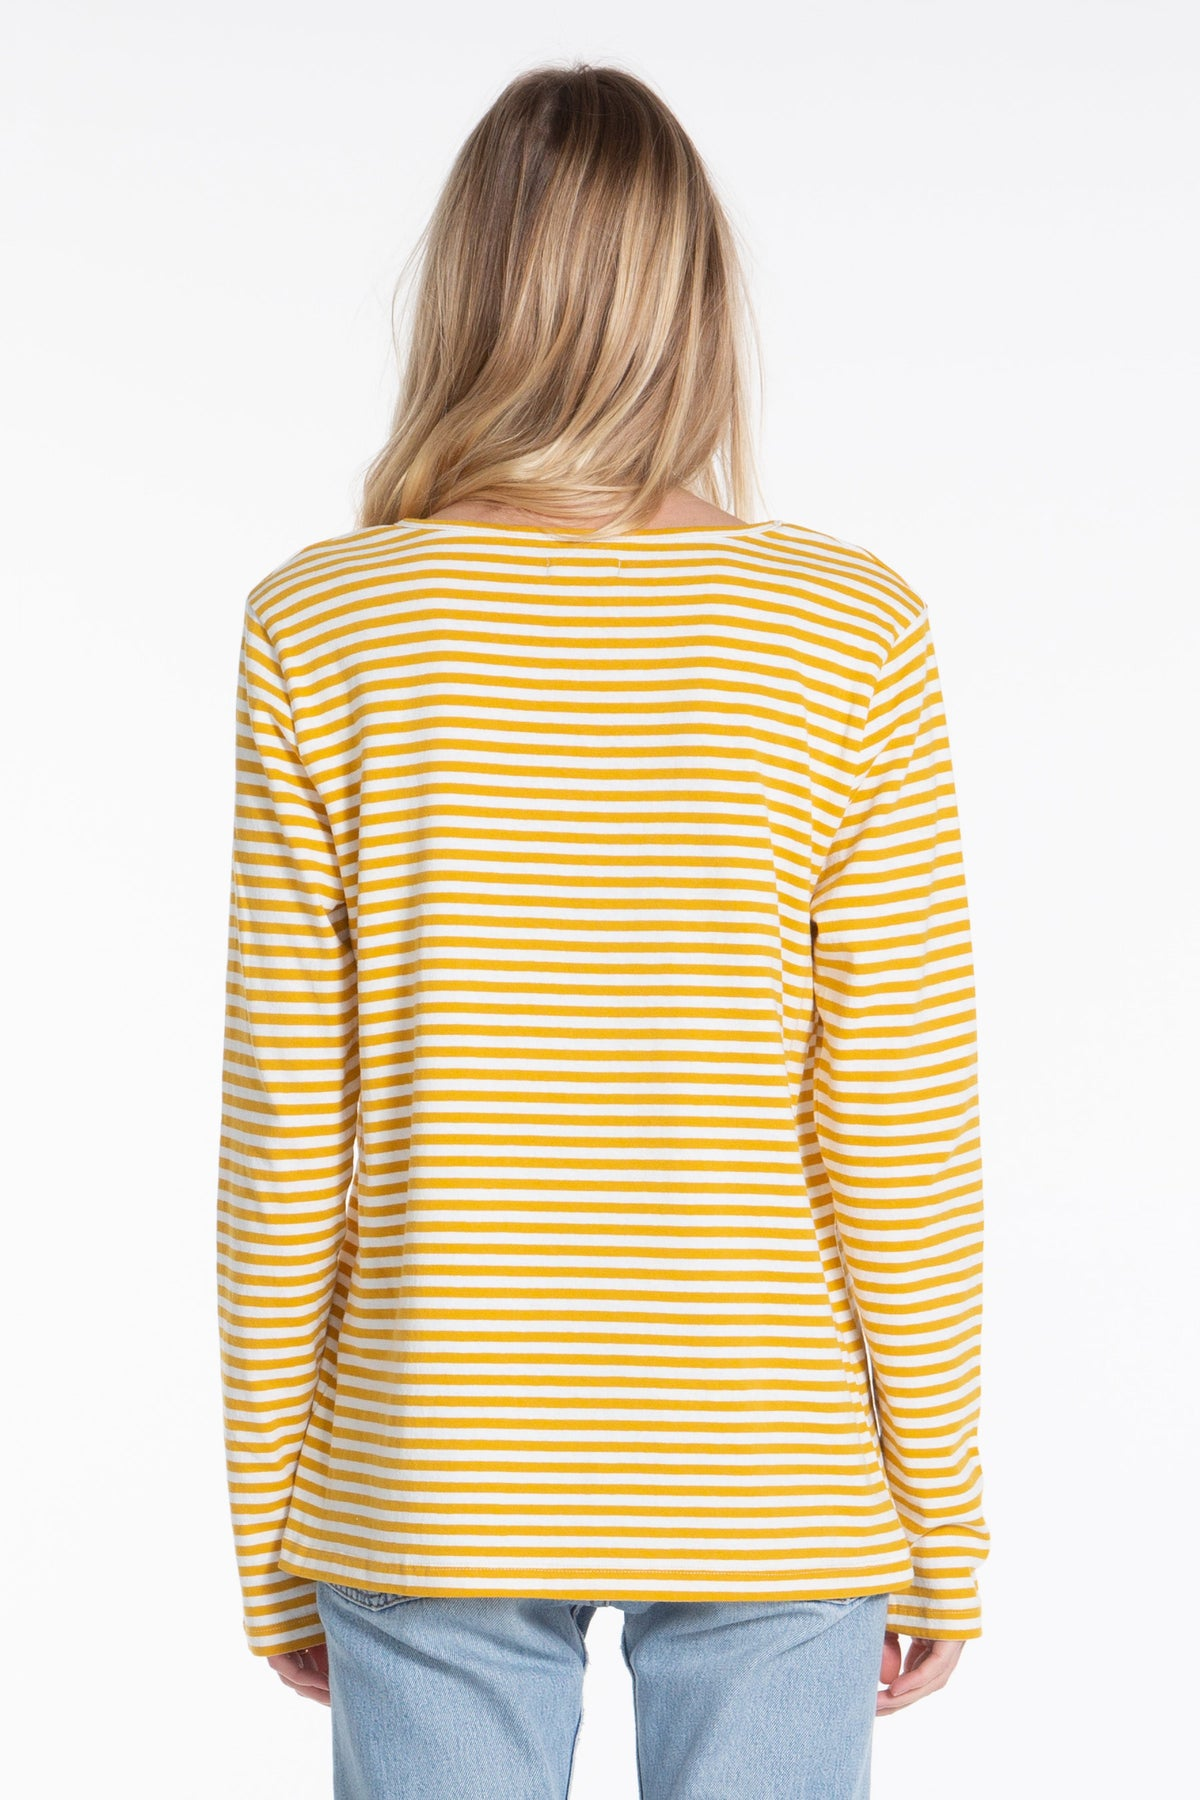 Classic LS Tee - Cream/Gold Stripe